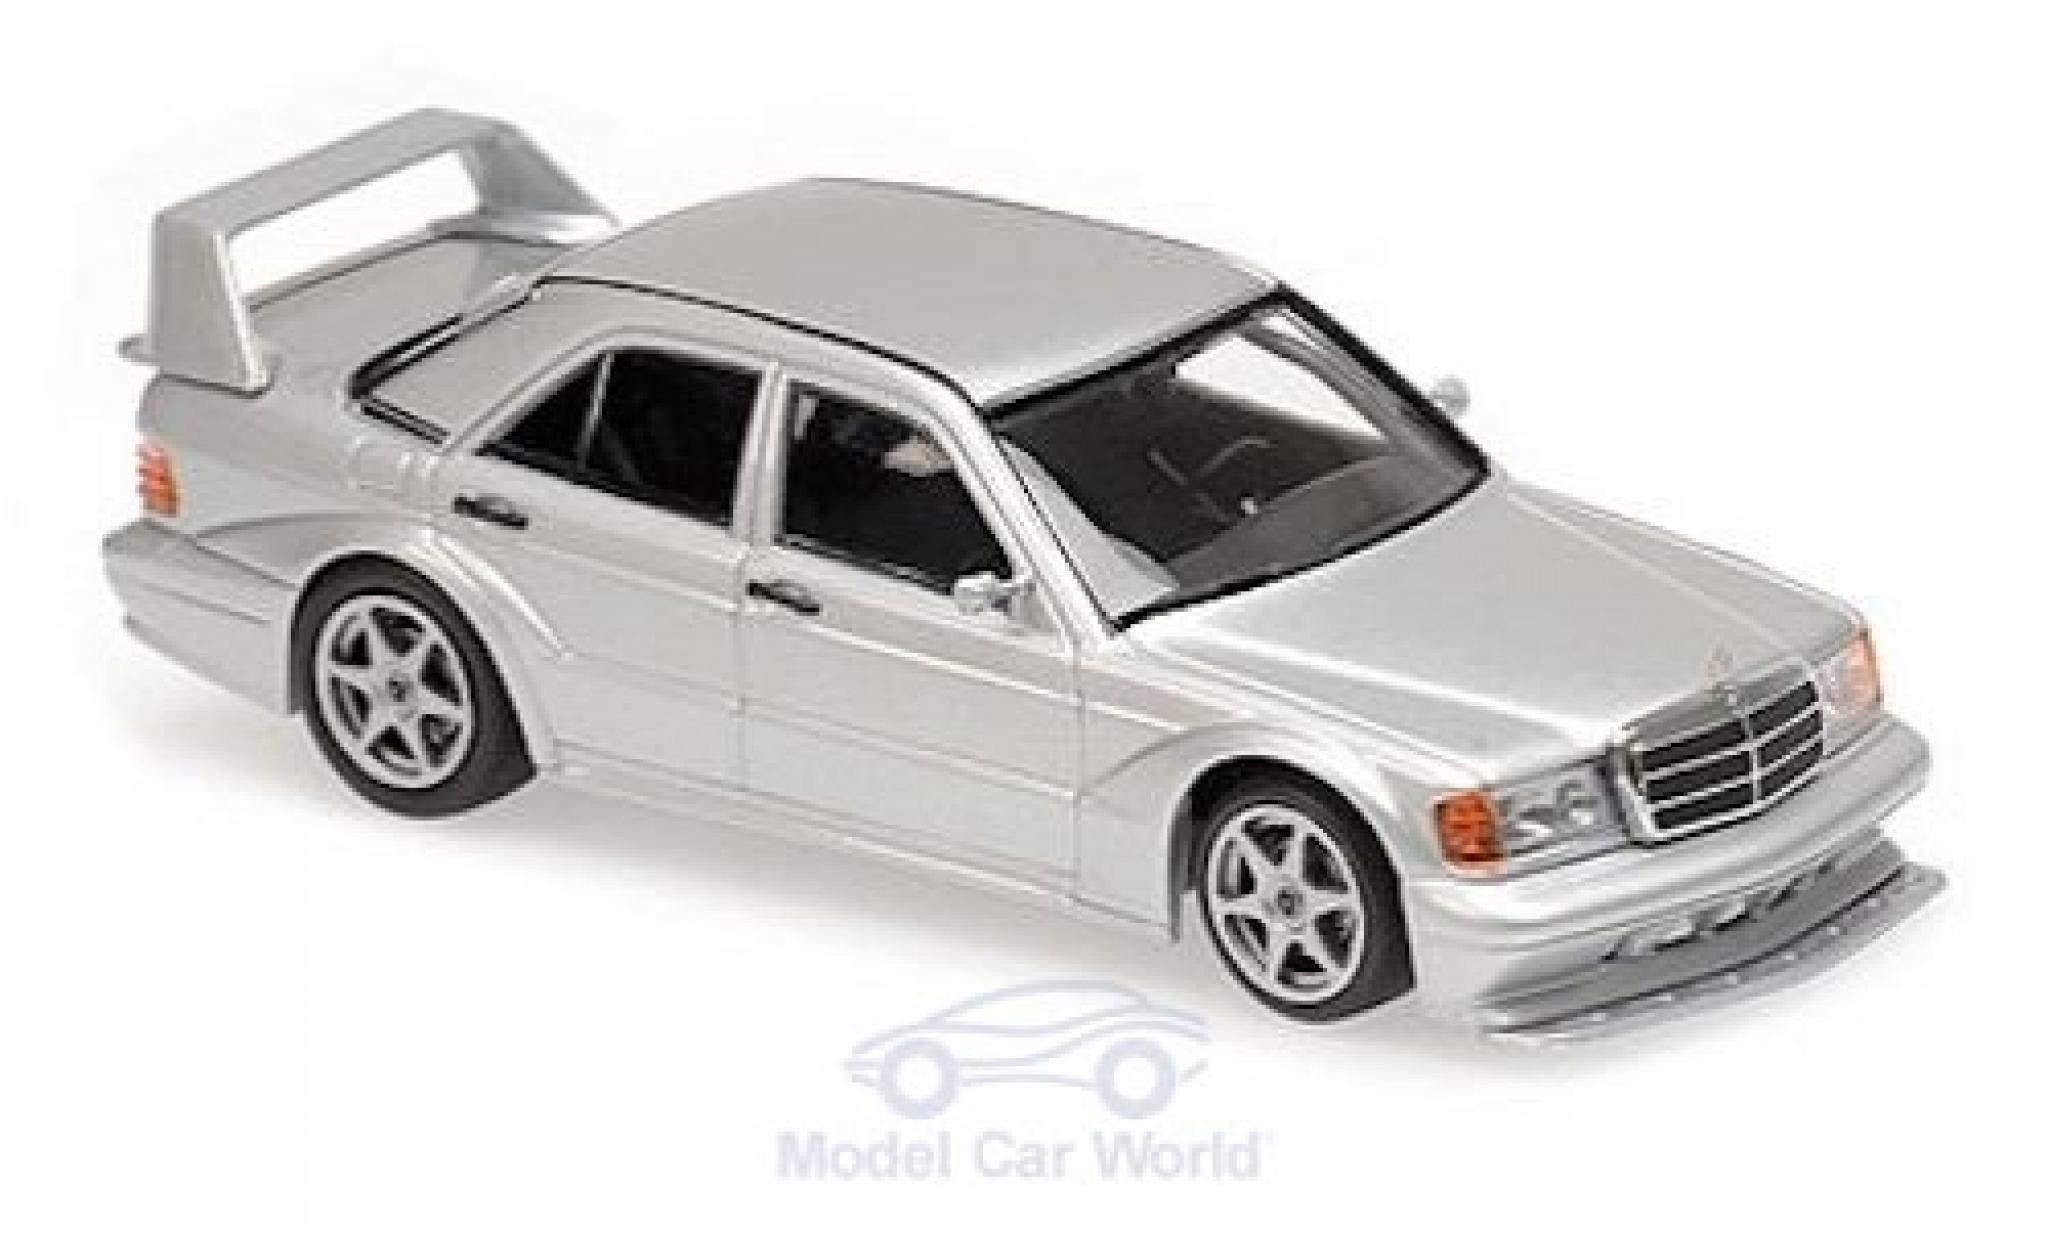 Mercedes 190 1/43 Maxichamps E 2.5-16 EVO 2 grey 1990